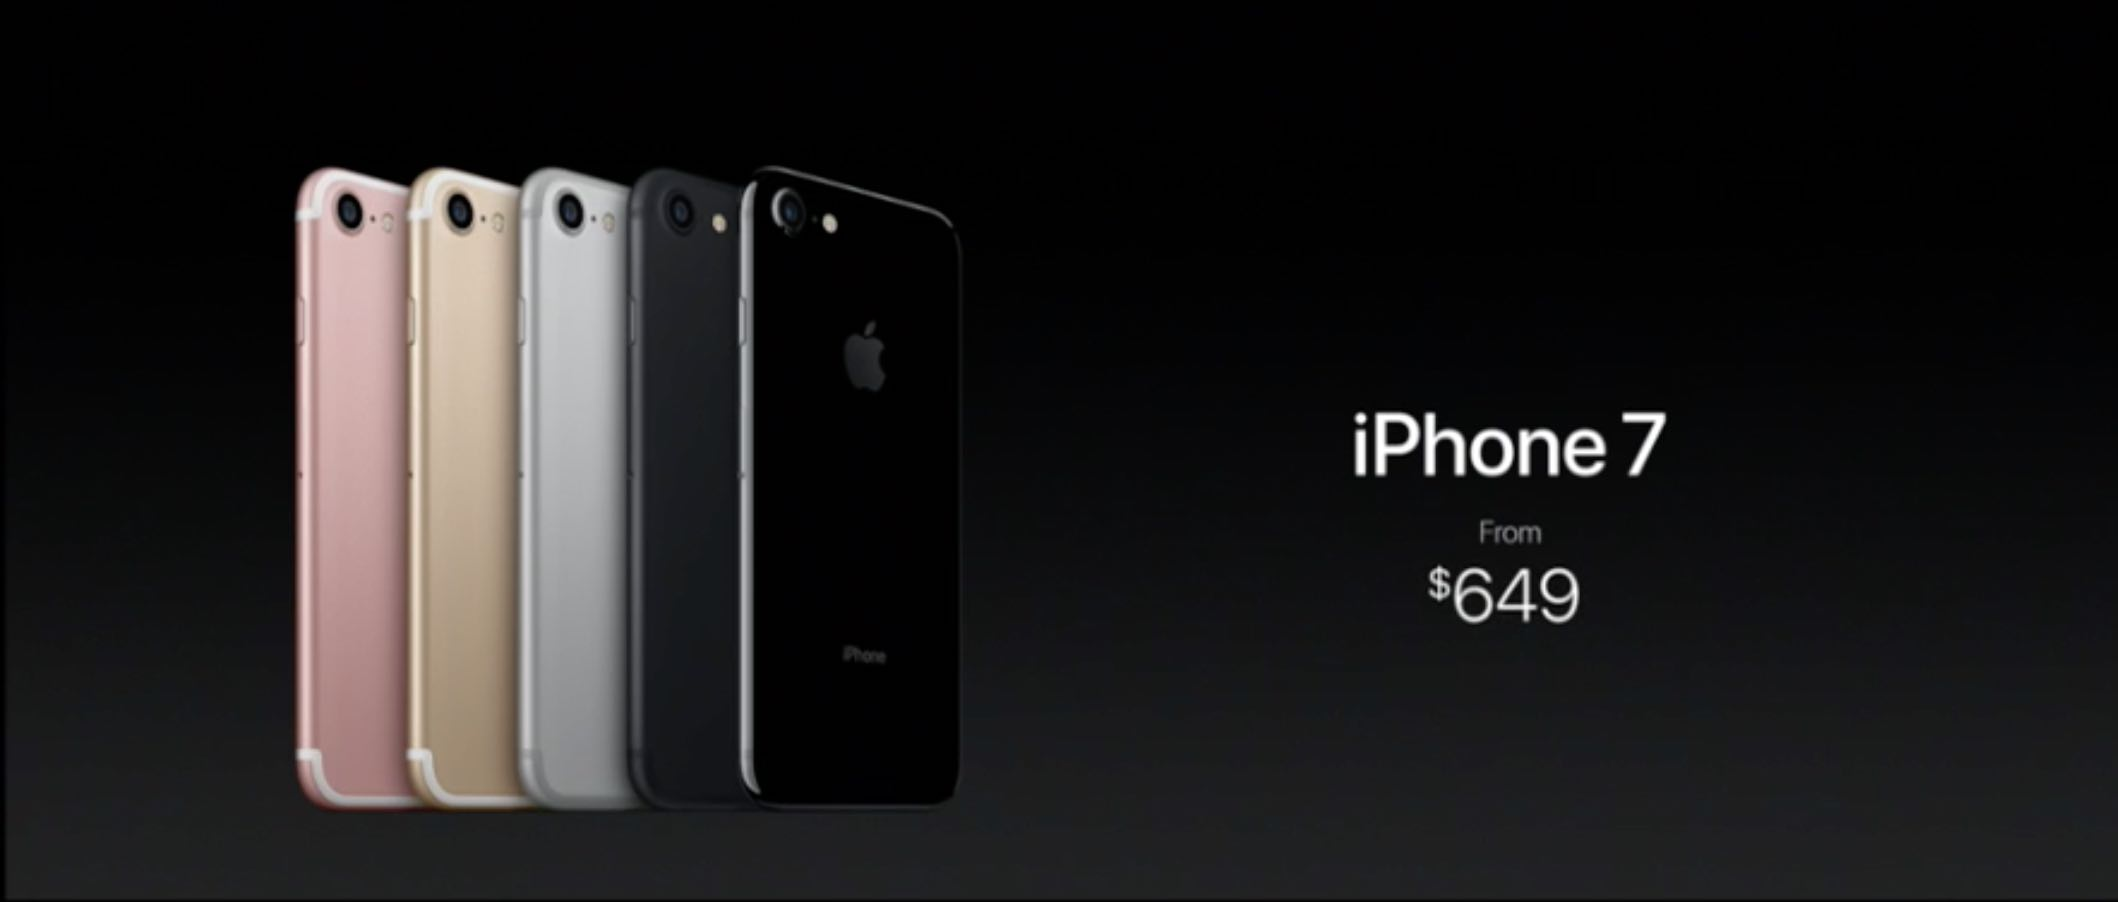 Pictures of the iPhone 7